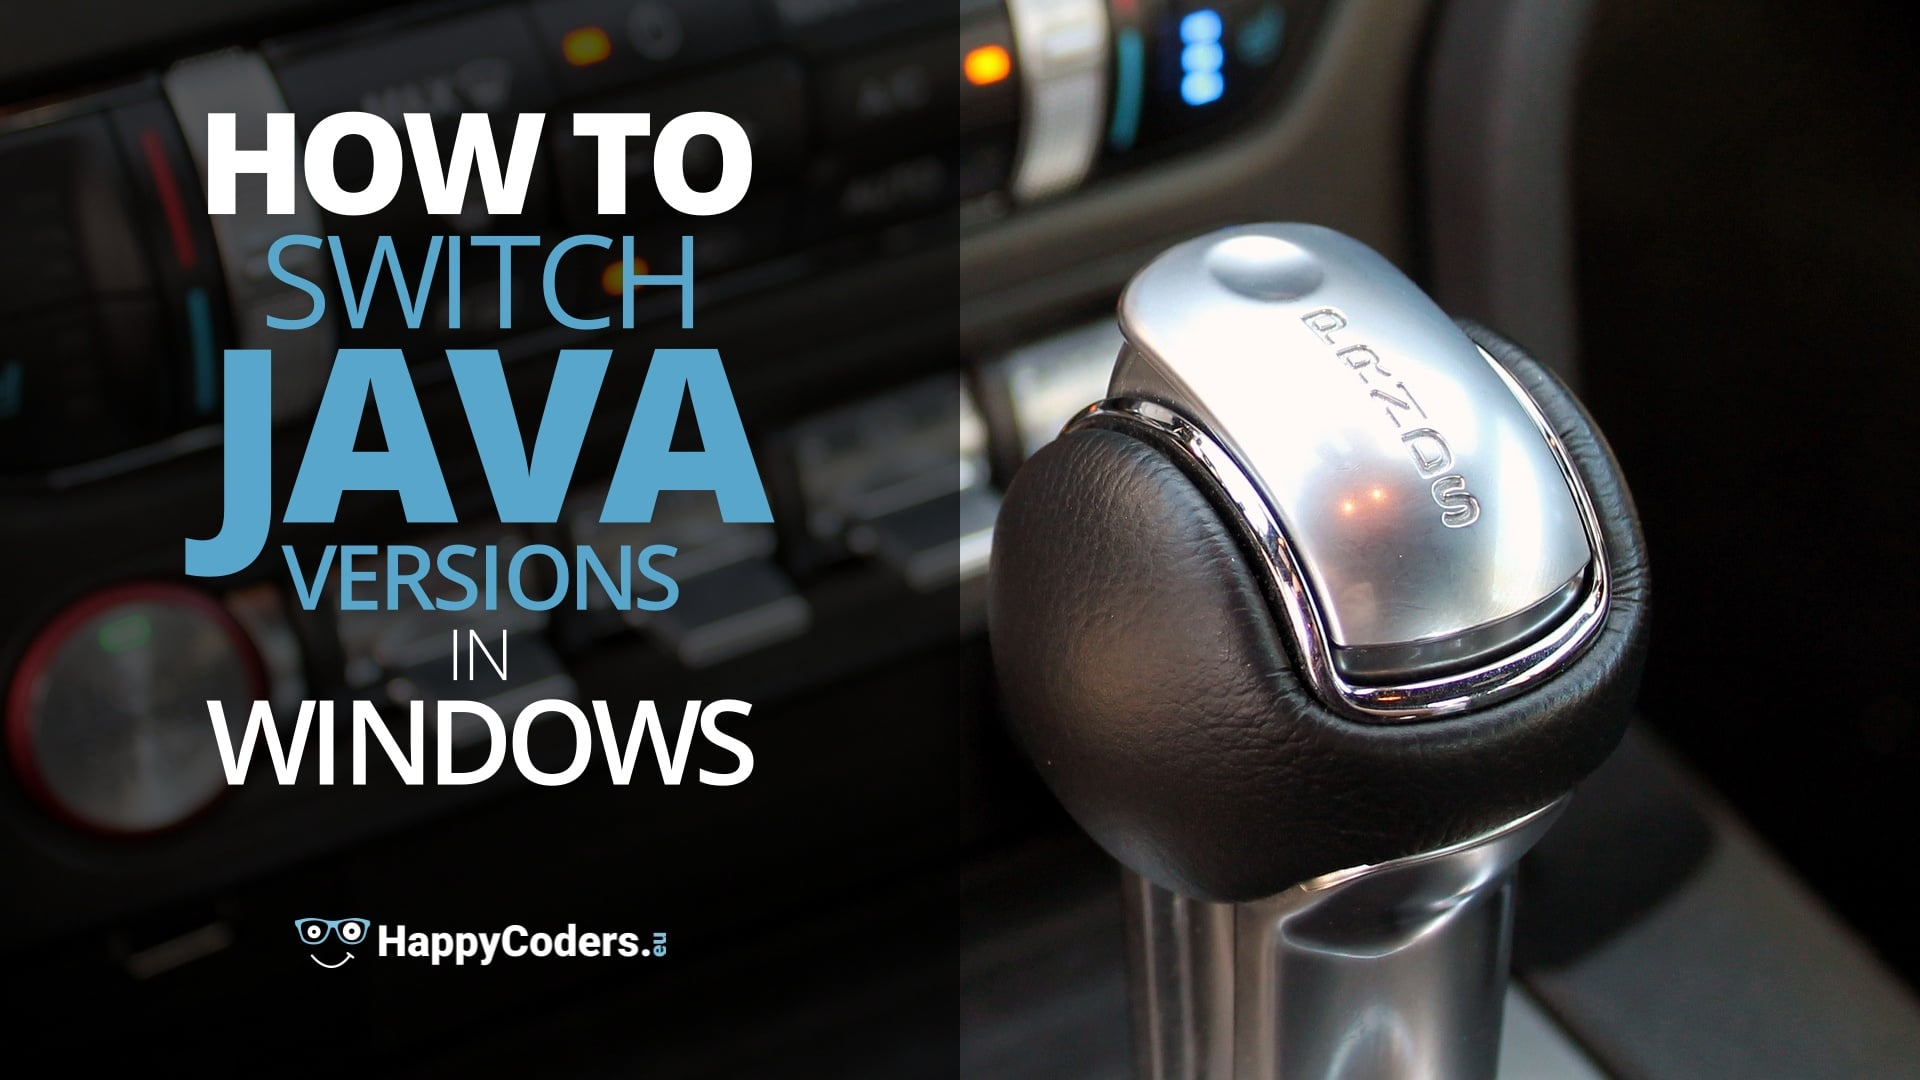 How to switch Java versions in Windows - feature image